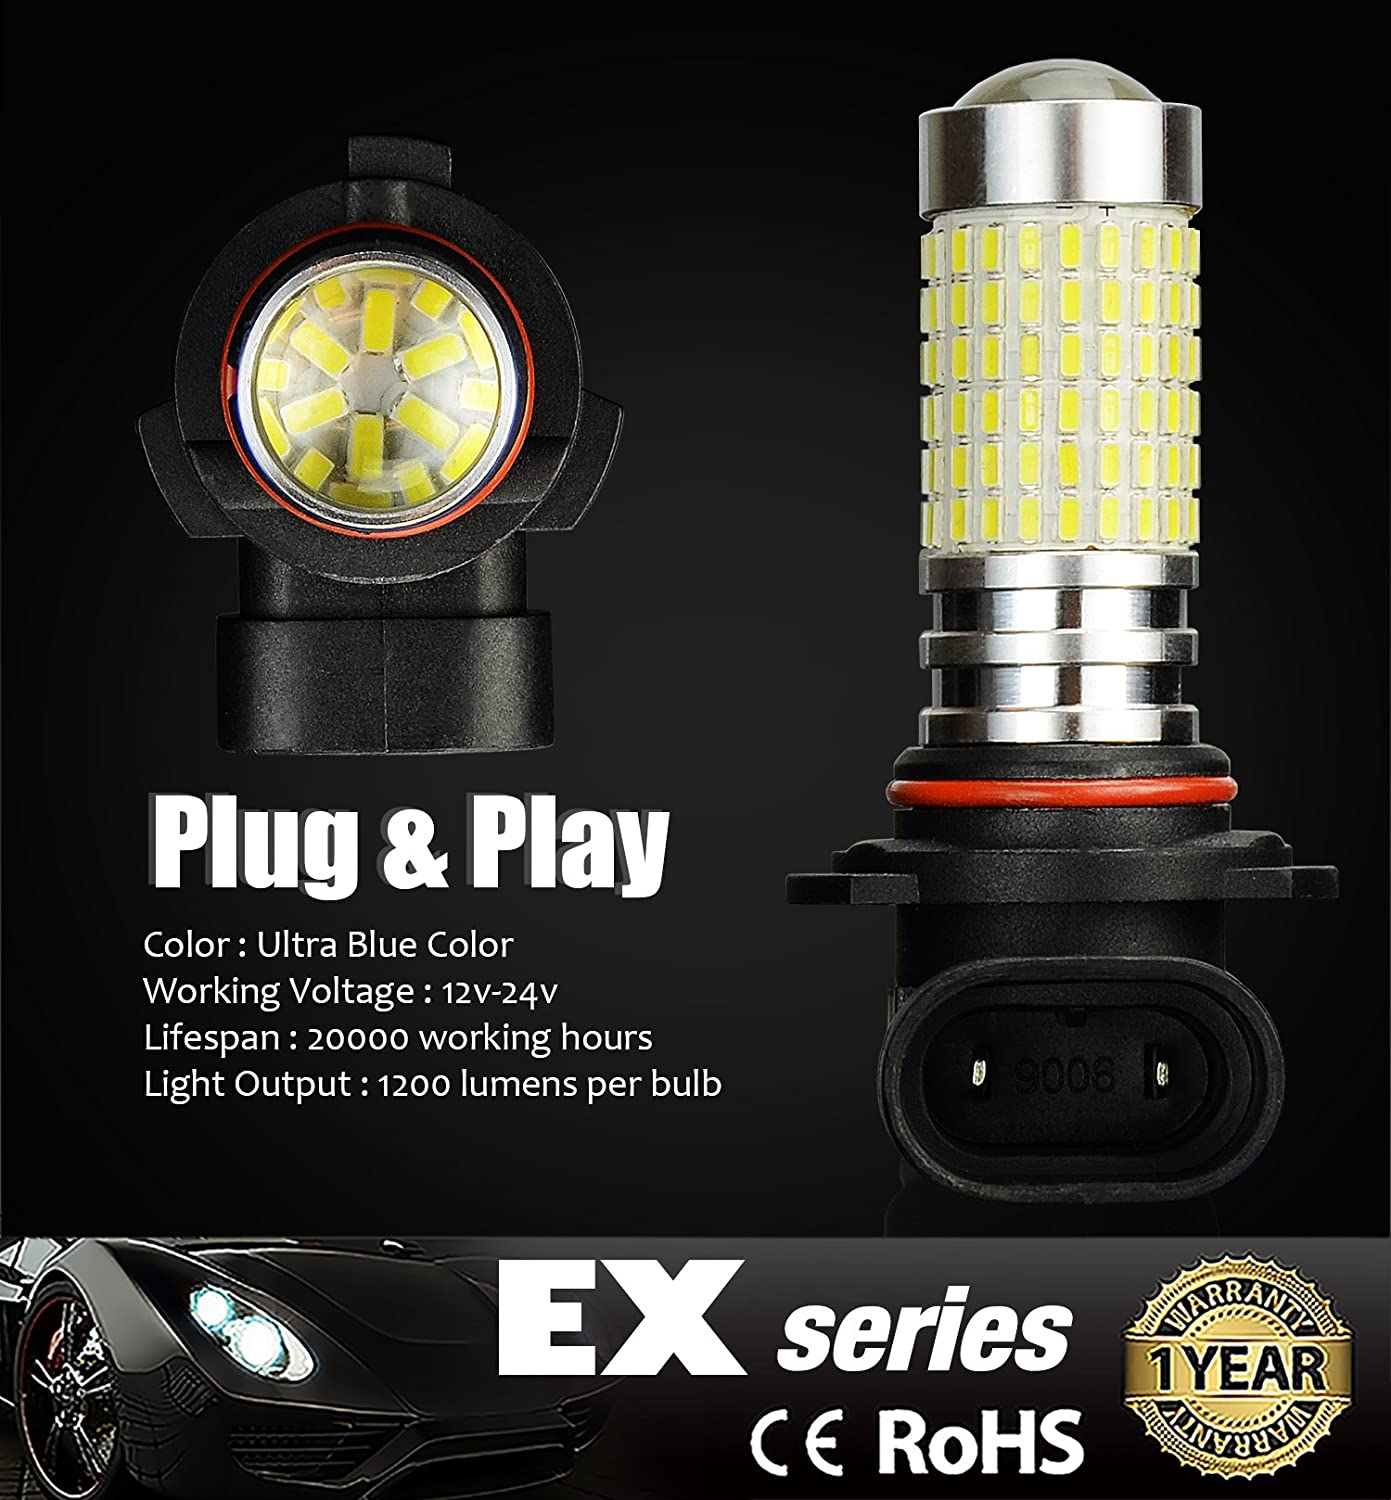 81YQHkh0caL._SL1500_ Wonderful toyota Camry 2008 Light Bulb Size Cars Trend